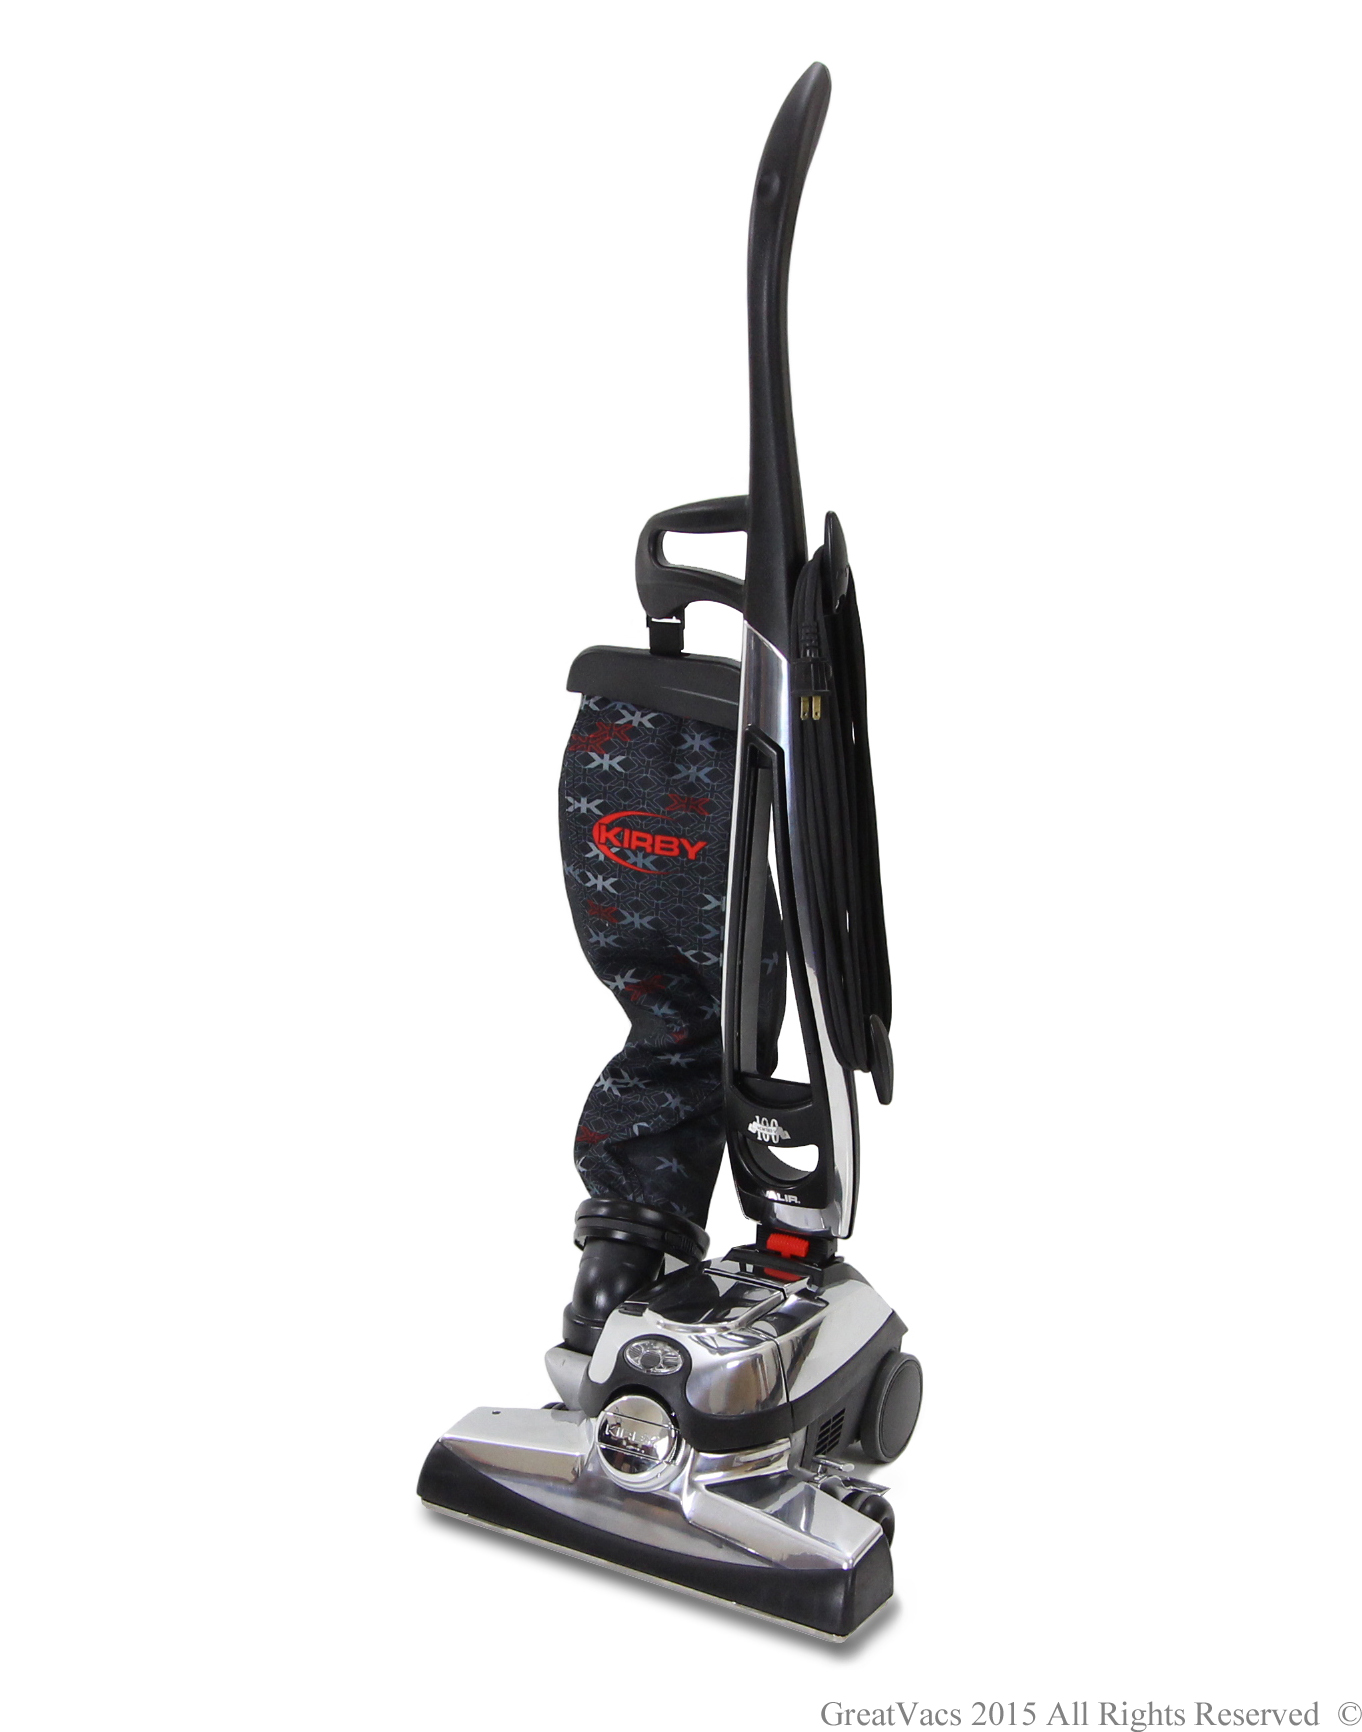 Refurbished Kirby Avalir Vacuum Cleaner Loaded With Tools Bags Shampooer Upright G11 Hepa